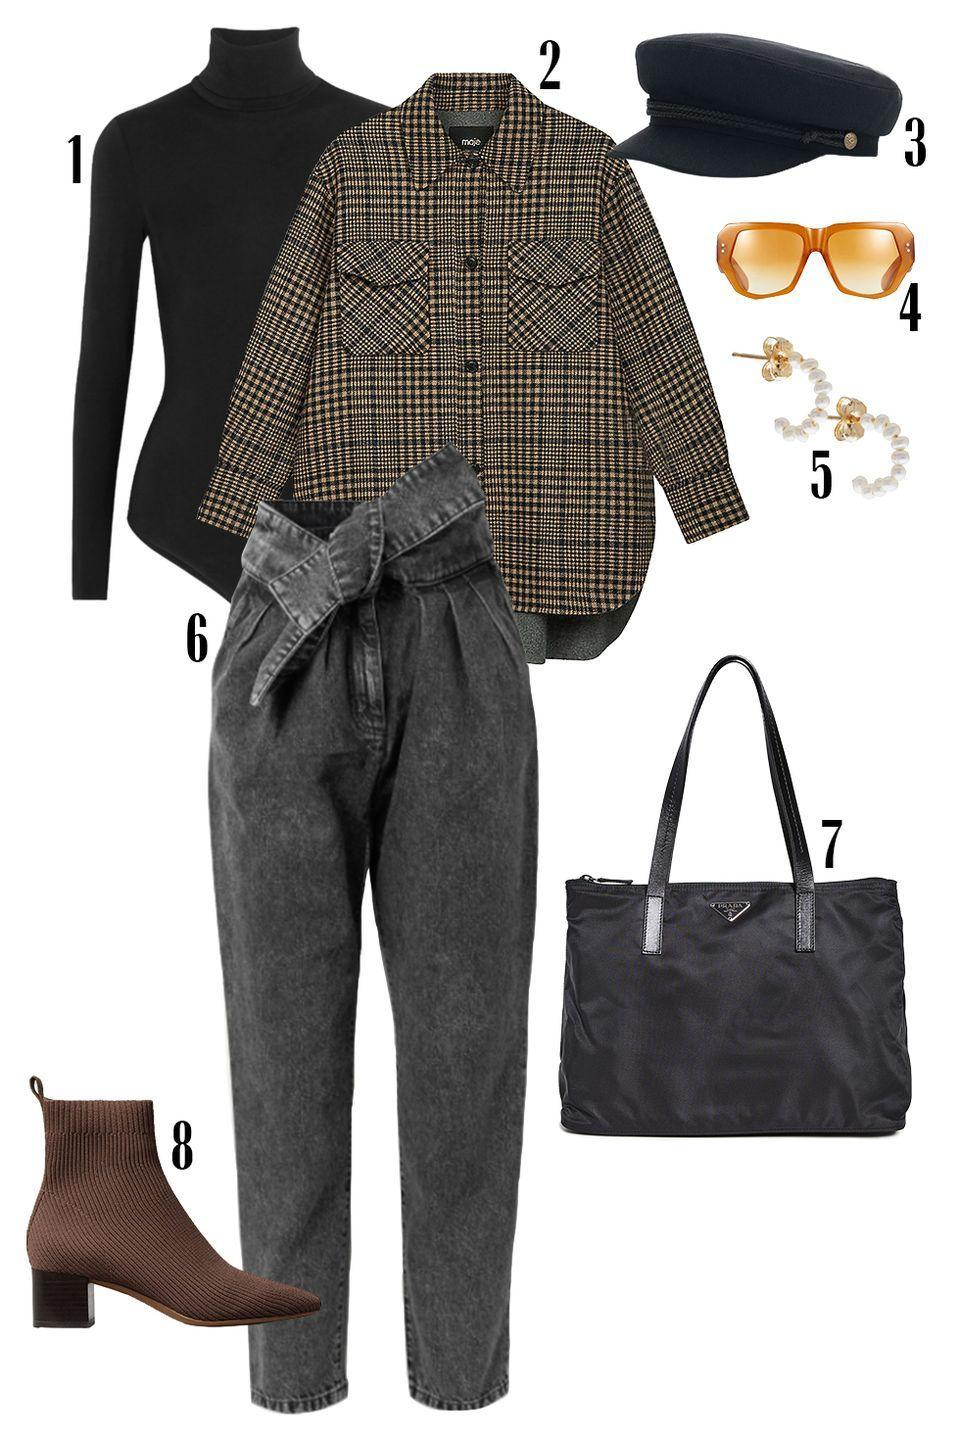 """<p>Your weekend full of errands doesn't have to lack in style. Get this off-duty look by layering a acid-wash jean over your Wolford bodysuit. Throw on a plaid shacket for an added relaxed feel and accessorize with yellow lens sunnies, a fisherman cap, and low-block heel boots for style and comfort.</p><p>Shop the pieces: <em><a href=""""https://www.net-a-porter.com/en-us/shop/product/wolford/colorado-thong-bodysuit/618045"""" rel=""""nofollow noopener"""" target=""""_blank"""" data-ylk=""""slk:Wolford Colorado Bodysuit"""" class=""""link rapid-noclick-resp"""">Wolford Colorado Bodysuit</a></em><em>,</em> $250; <a href=""""https://www.selfridges.com/US/en/cat/maje-gavino-oversized-check-coat_R03630910/?previewAttribute=CAMEL&previewSize=10&cm_mmc=PLA-_-GoogleUS-_-WOMENS-_-MAJE&POR=Y&utm_source=google&utm_medium=cpc&utm_campaign=na_na_pla-b_na_na_na_INT_USA-PLA-CATCHALL&gclid=Cj0KCQiA34OBBhCcARIsAG32uvOCVOvi6k7o4BLM3mbtQDmxhGwi2g83VUd5H-_XmgVeHSdZ7AJs2qQaAqorEALw_wcB&gclsrc=aw.ds"""" rel=""""nofollow noopener"""" target=""""_blank"""" data-ylk=""""slk:MAJE Shaket"""" class=""""link rapid-noclick-resp"""">MAJE Shaket</a>, $595; <em><a href=""""https://www.brixton.com/products/fiddler-cap-black"""" rel=""""nofollow noopener"""" target=""""_blank"""" data-ylk=""""slk:Brixton Cap"""" class=""""link rapid-noclick-resp"""">Brixton Cap</a></em>, $45; <em><a href=""""https://www.nordstrom.com/s/pared-bec-bridge-48mm-geometric-sunglasses/5756622"""" rel=""""nofollow noopener"""" target=""""_blank"""" data-ylk=""""slk:Bec & Bridge Sunglasses"""" class=""""link rapid-noclick-resp"""">Bec & Bridge Sunglasses</a></em><em>,</em> $220; <em><a href=""""https://www.catbirdnyc.com/baby-pearl-hoop-single.html"""" rel=""""nofollow noopener"""" target=""""_blank"""" data-ylk=""""slk:Cat Bird Earrings"""" class=""""link rapid-noclick-resp"""">Cat Bird Earrings</a></em>, $88, <em><a href=""""https://www.net-a-porter.com/en-us/shop/product/iro/repu-cropped-belted-acid-wash-high-rise-tapered-jeans/1216693"""" rel=""""nofollow noopener"""" target=""""_blank"""" data-ylk=""""slk:IRO Denim"""" class=""""link rapid-noclick-resp"""">IRO Denim</a></em>, $160; <em><a href=""""h"""